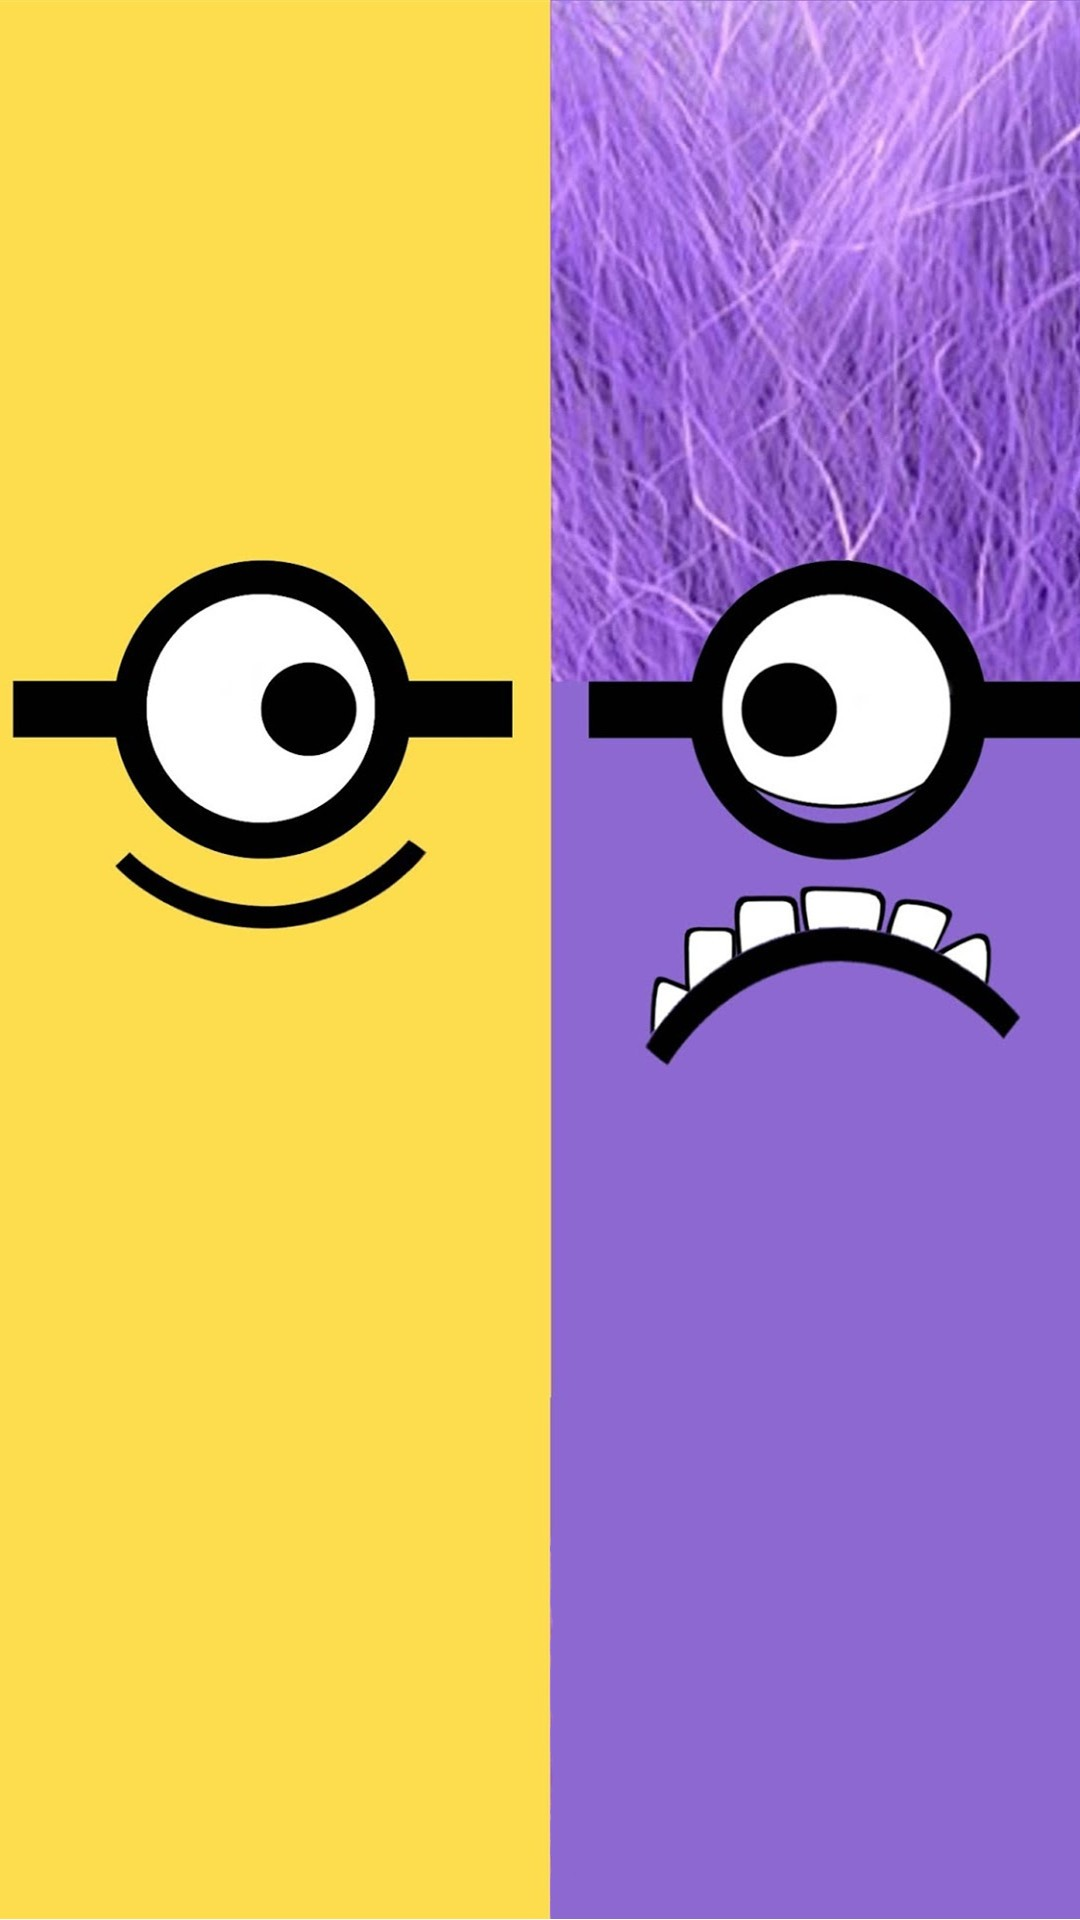 Despicable-Me-yellow-and-purple-minion-iphone-plus-HD-for-Halloween-Hallowee-wallpaper-wpc5804098